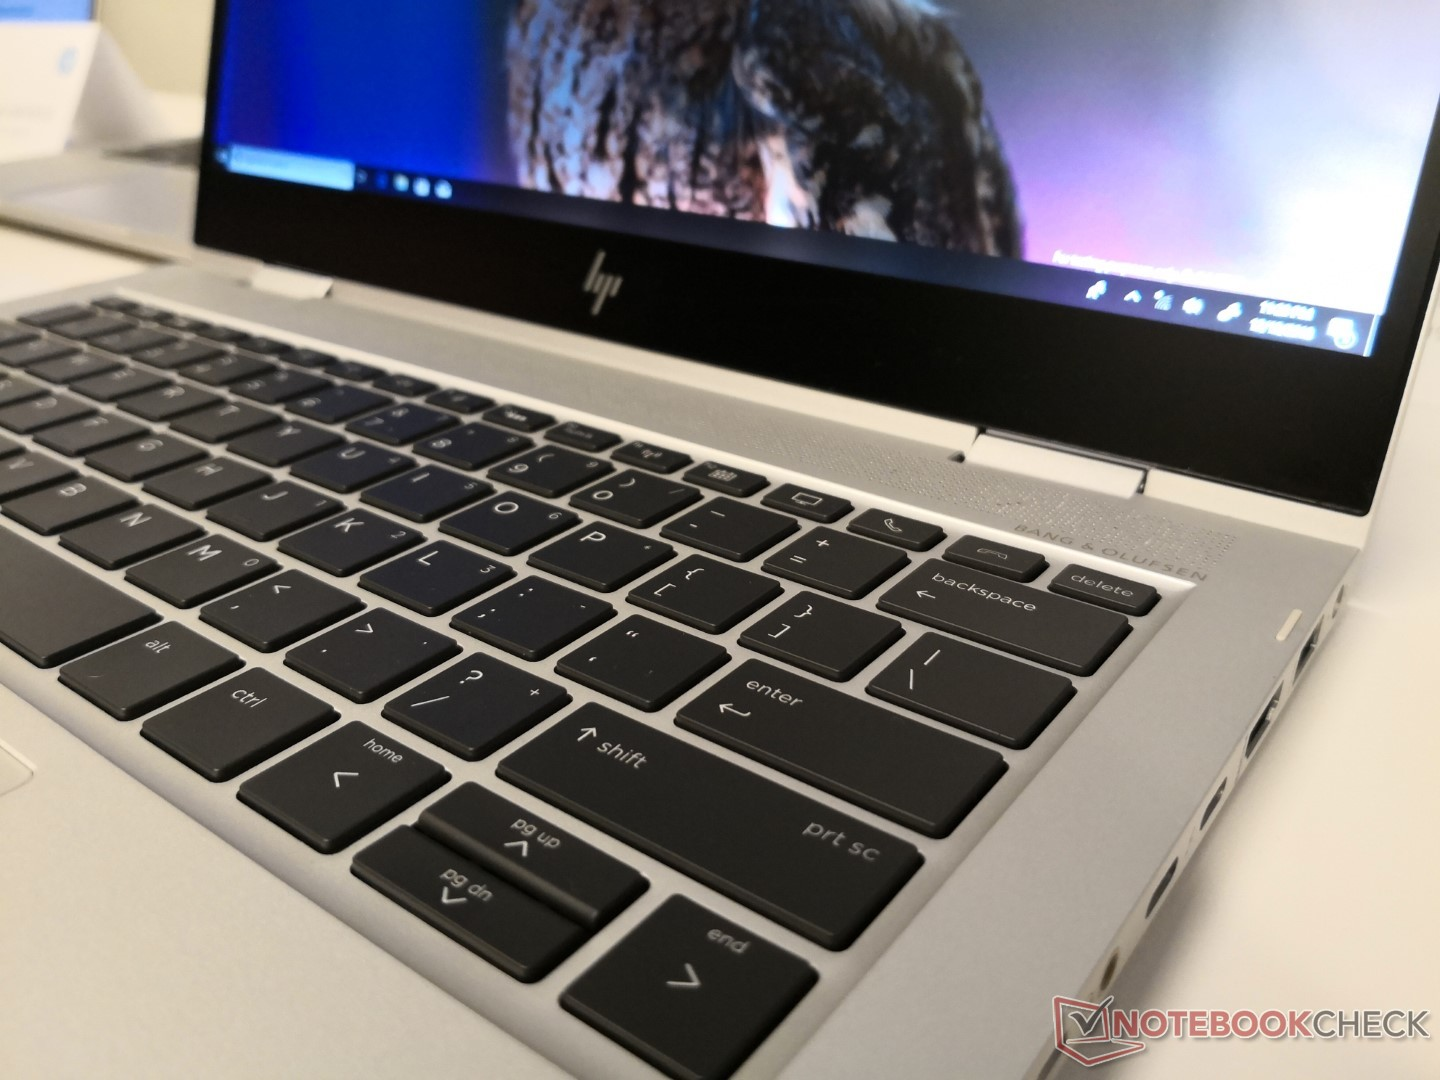 Hp Elitebook X360 830 G5 Display Will Be Two Times